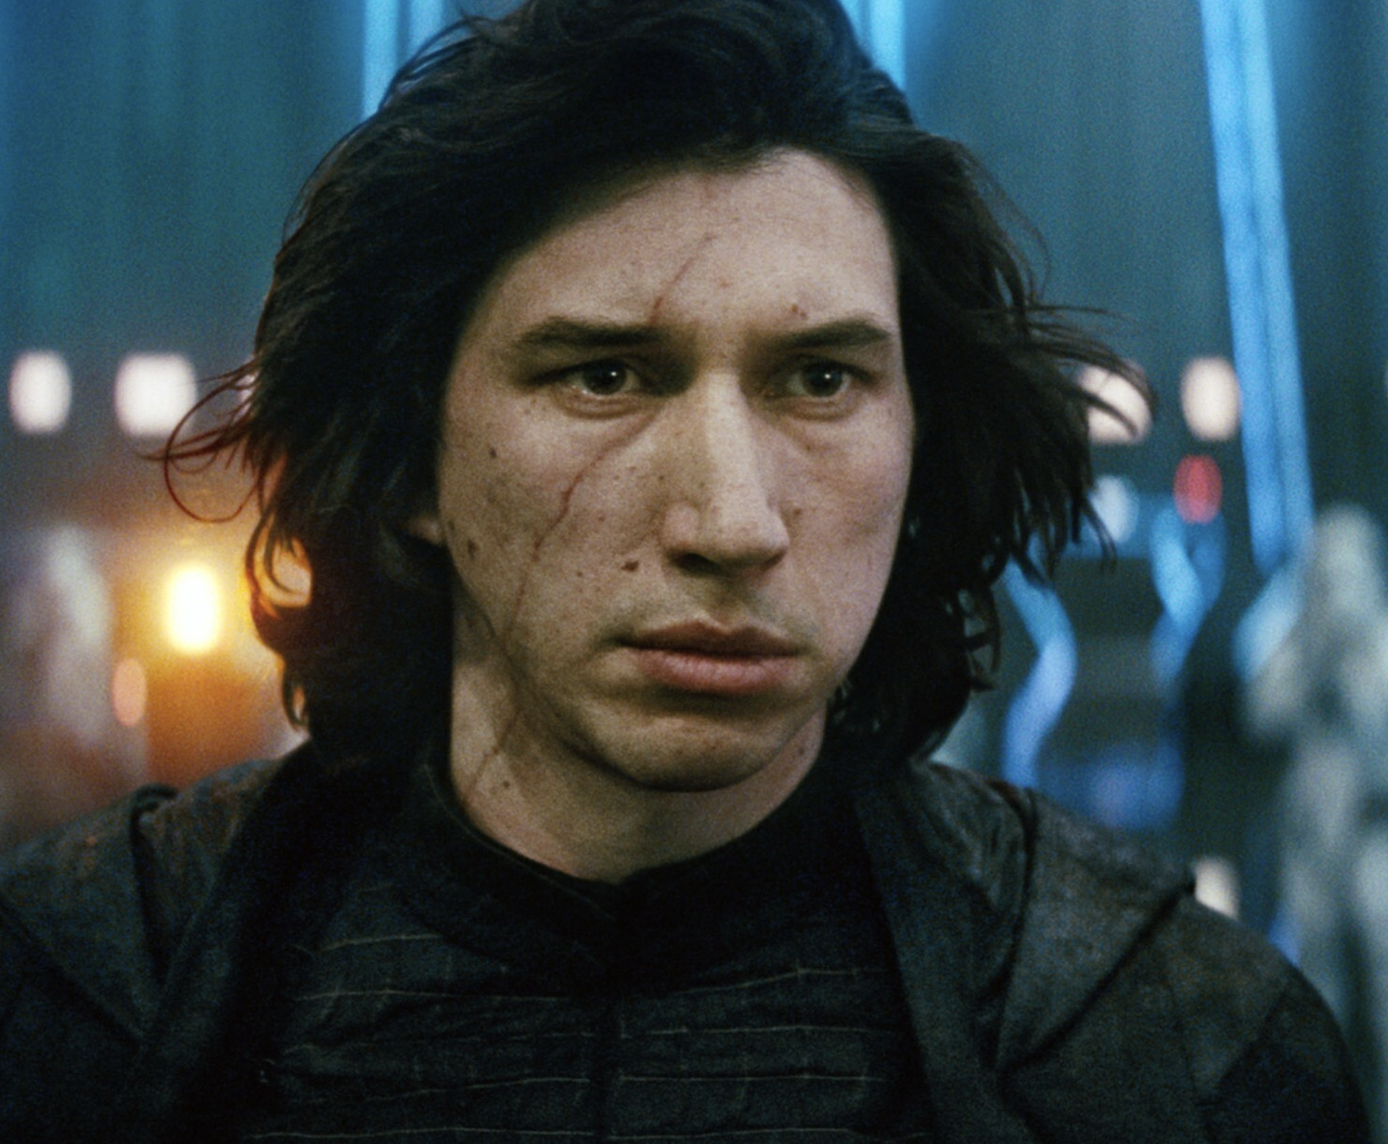 Kylo Ren looking into the distance